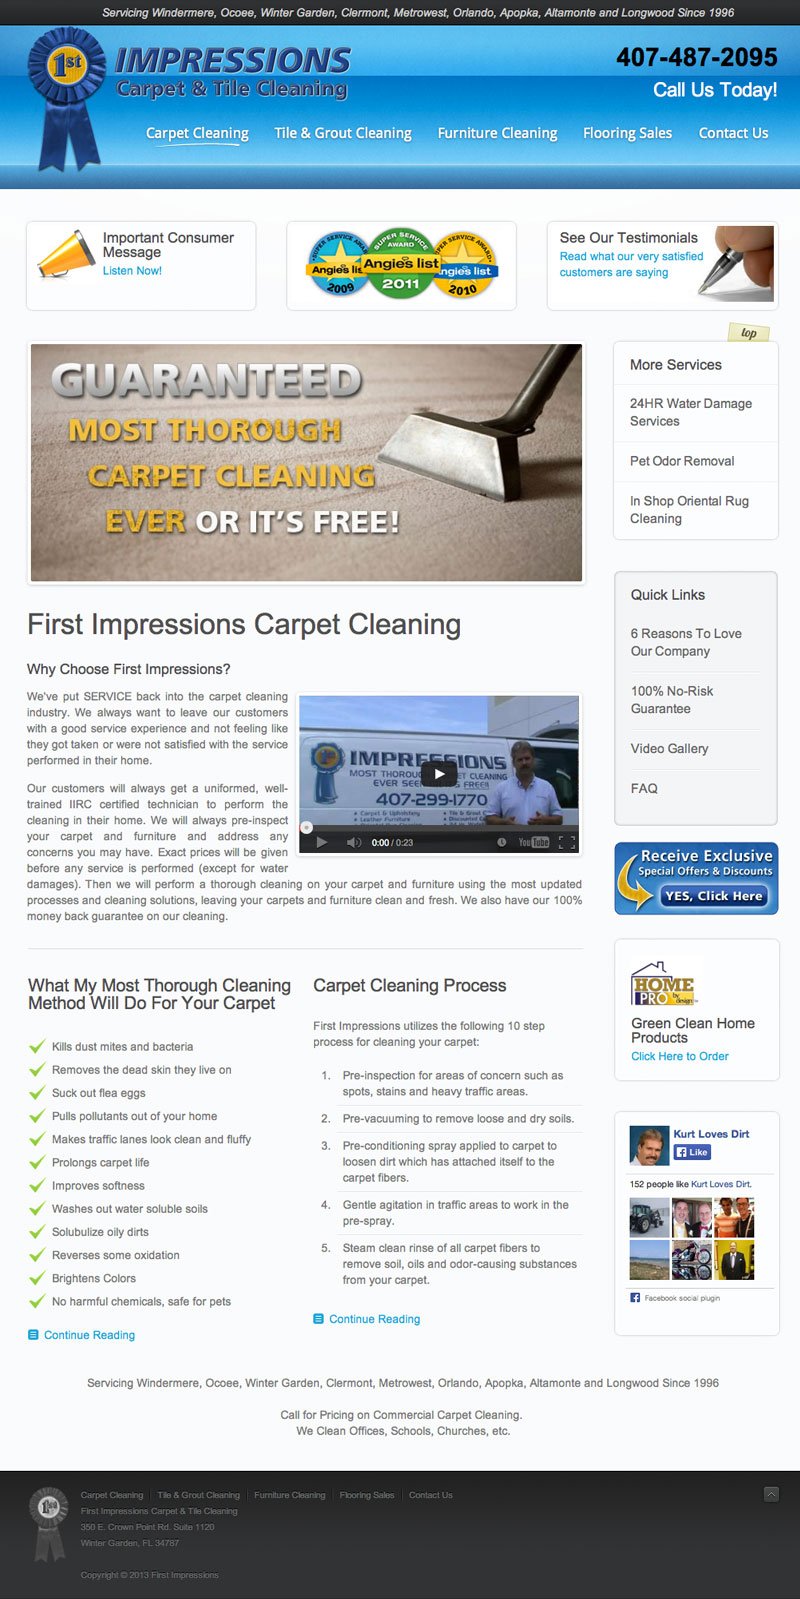 First Impressions Carpet Cleaning